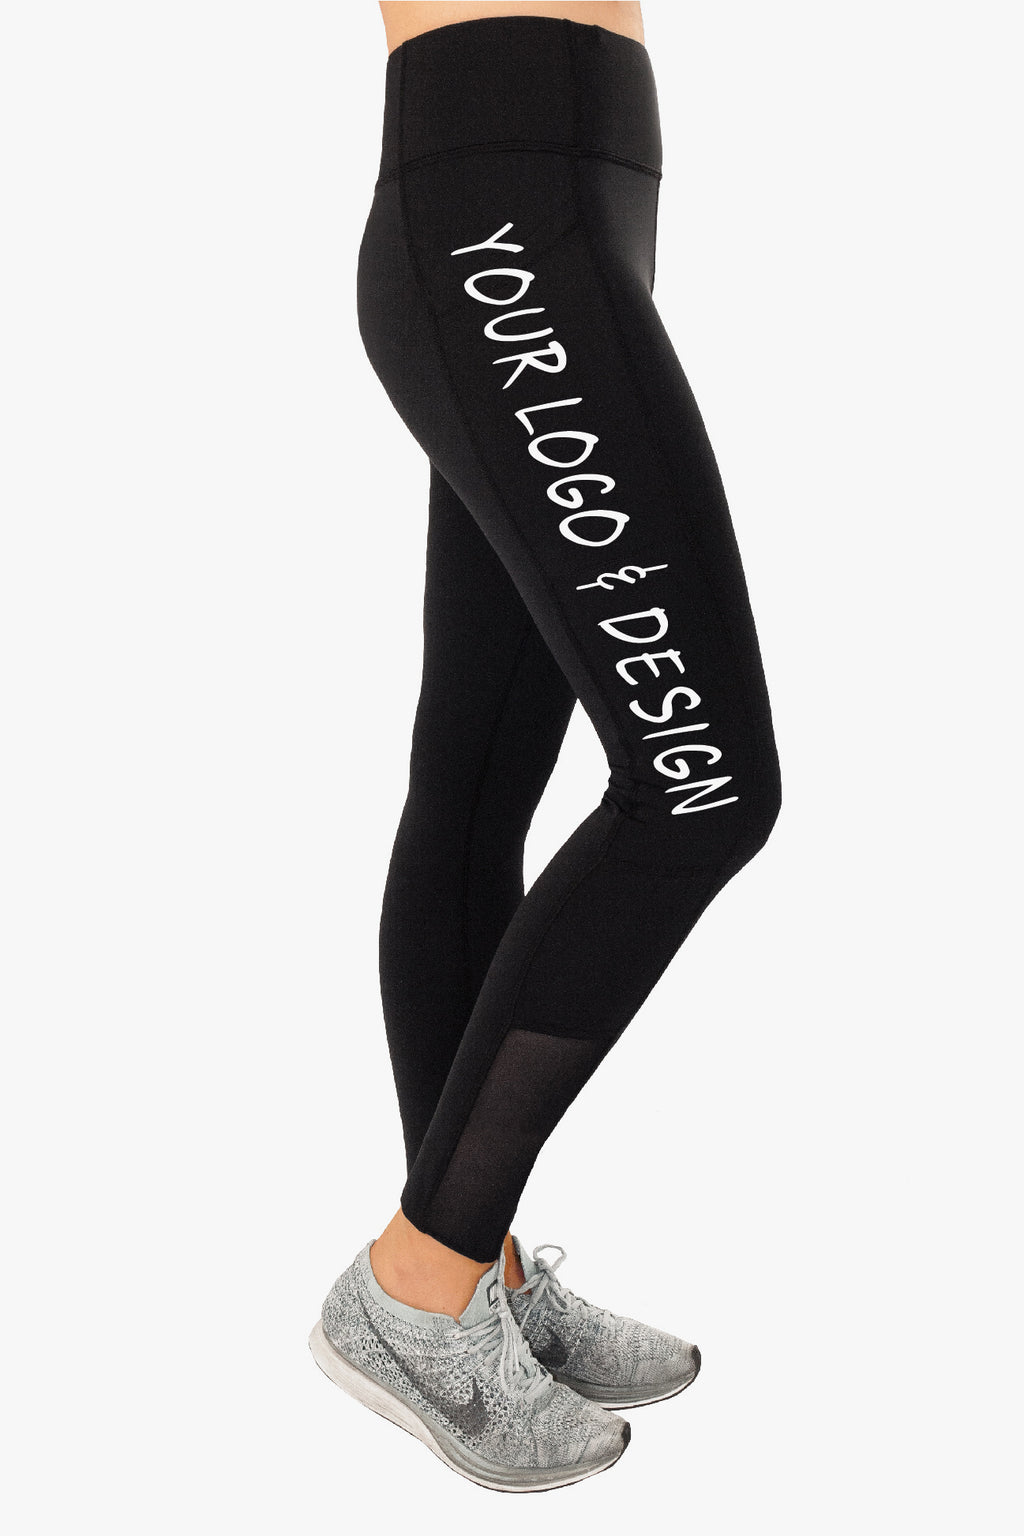 L7001 Full Leggings Sample - (Special Orders with Custom Design)